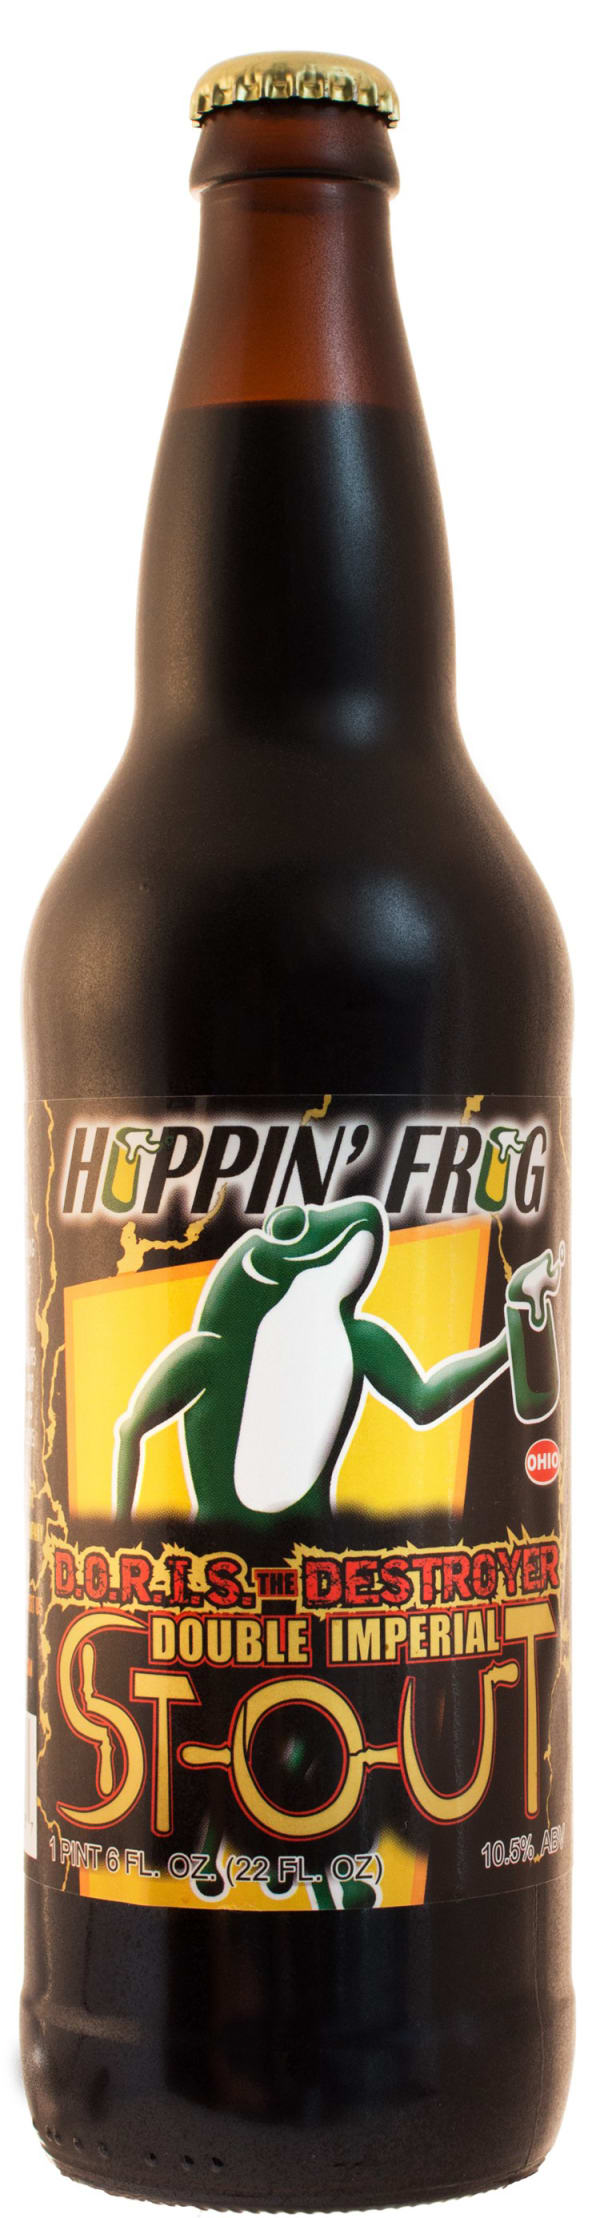 Hoppin' Frog D.O.R.I.S. the Destroyer Double Imperial Stout